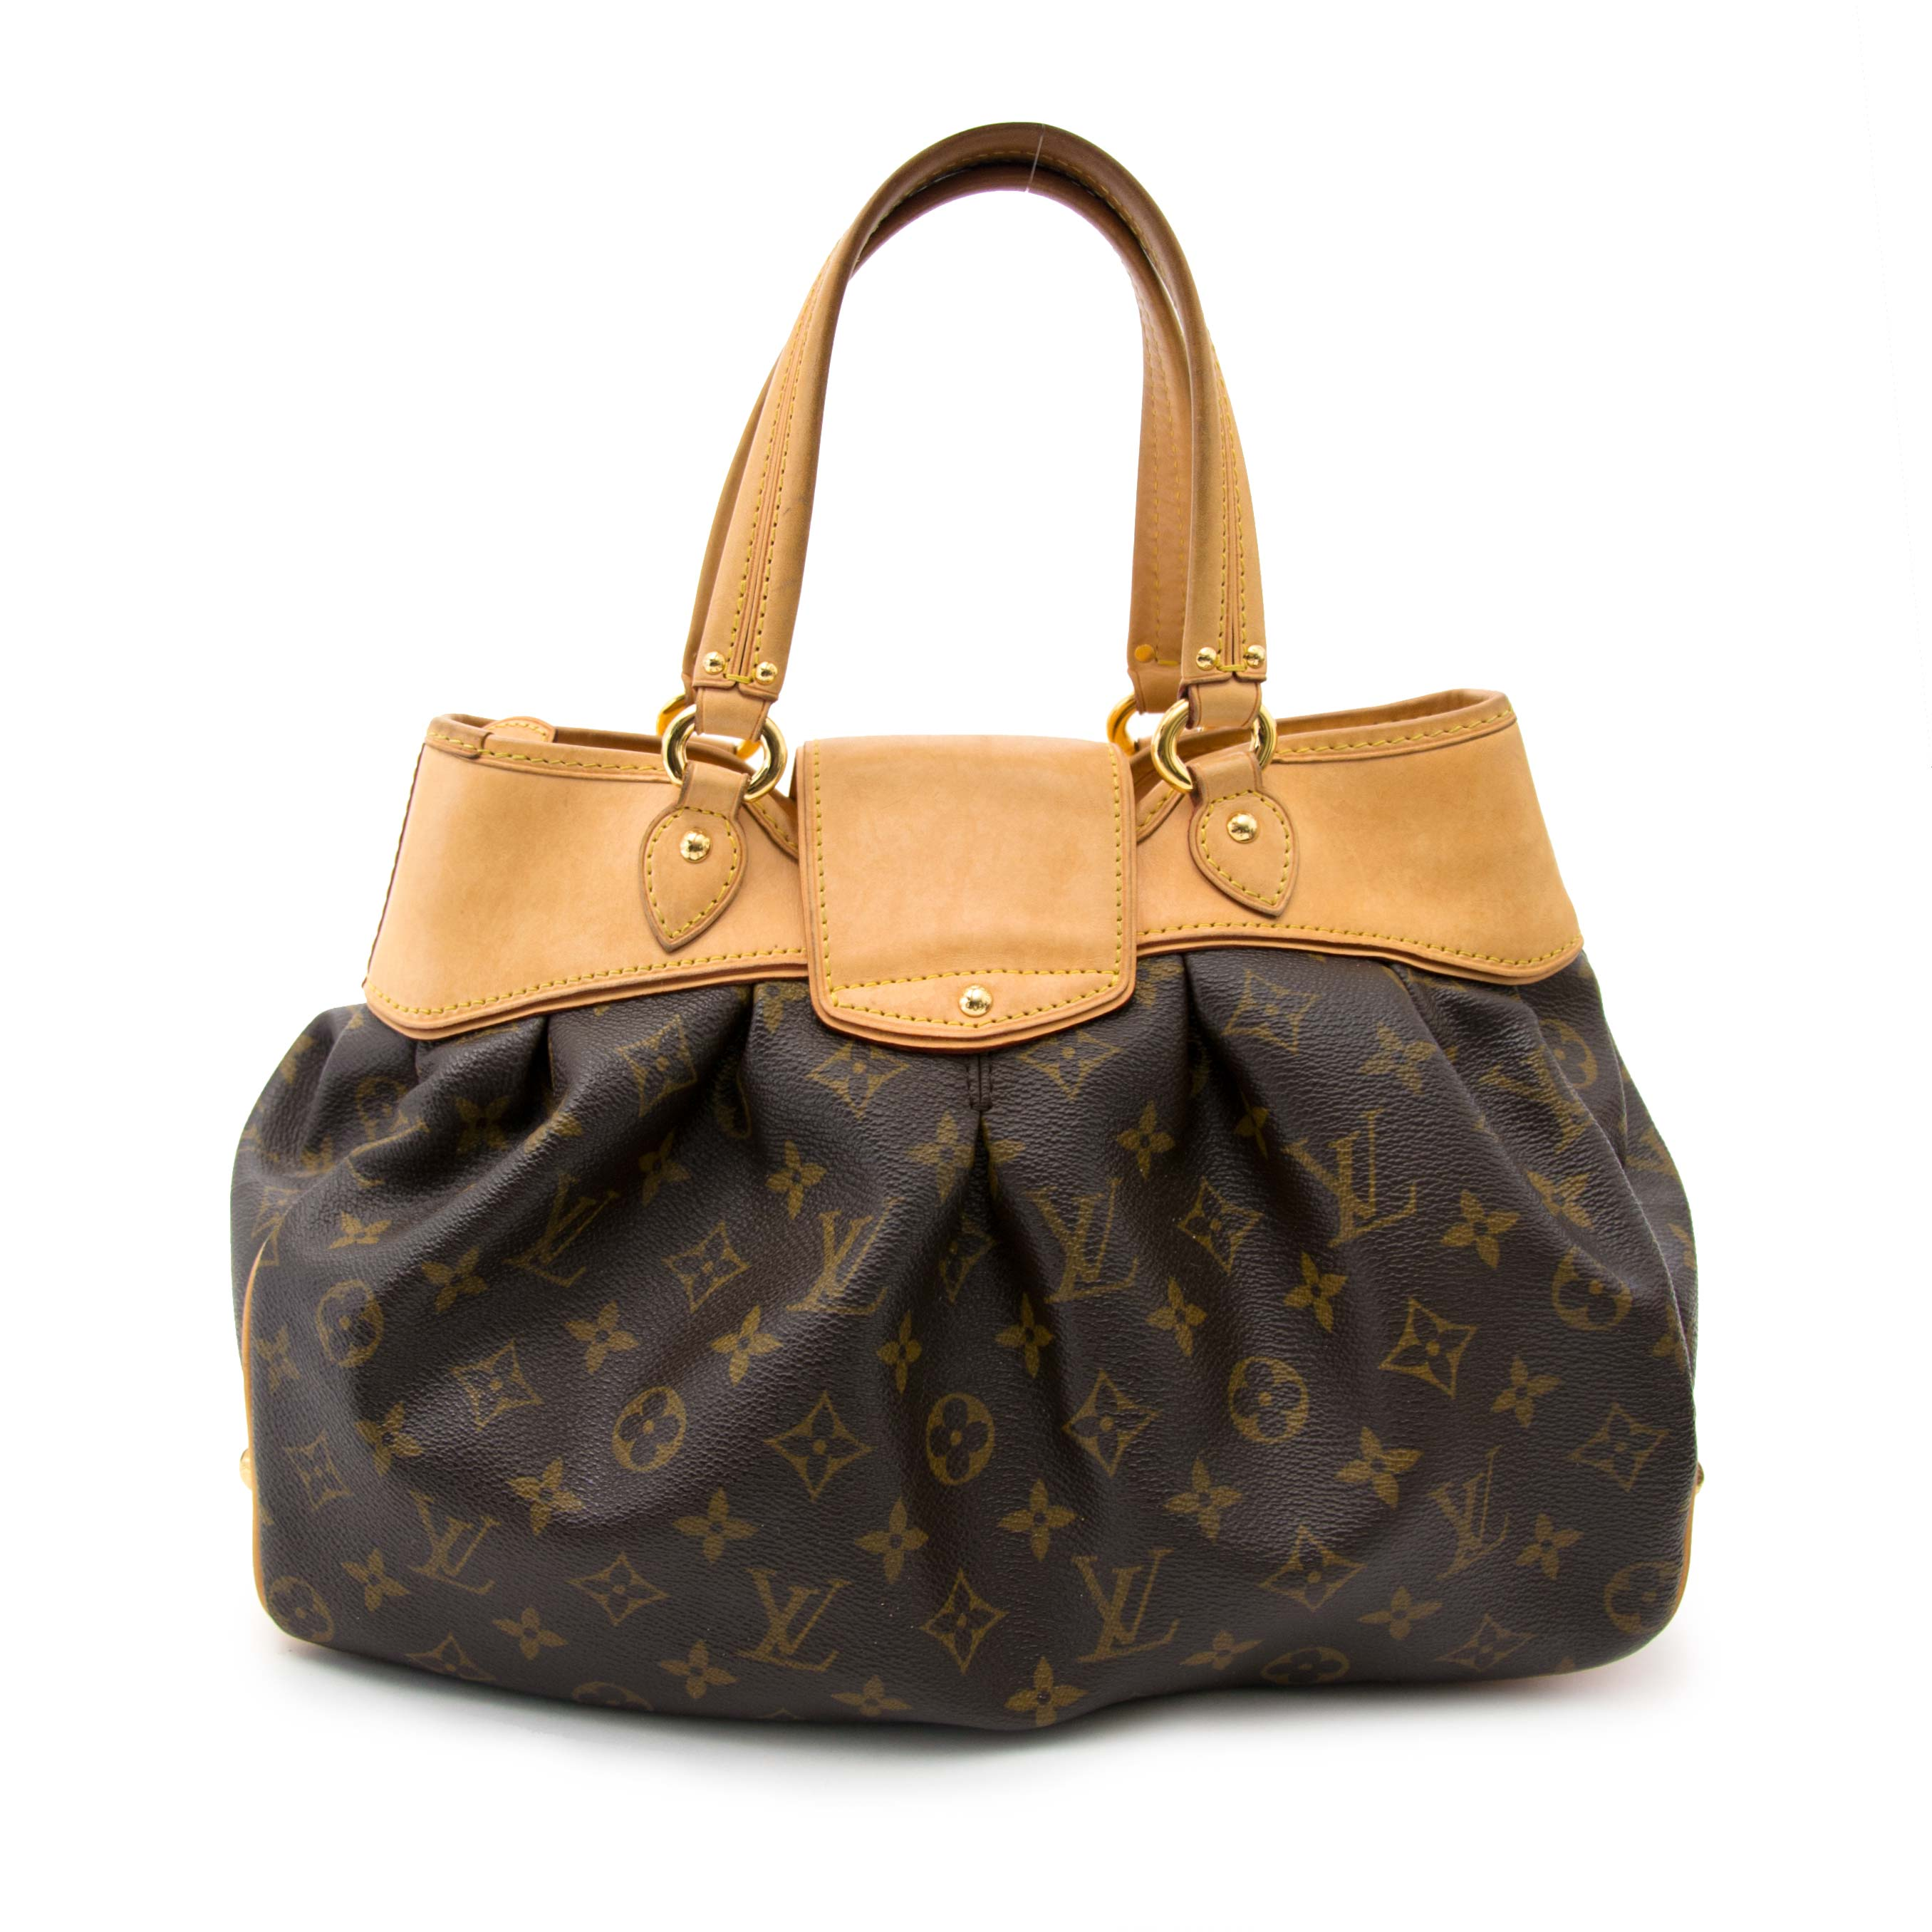 20b66d670260 Louis Vuitton Boeti PM available online at labellov Louis Vuitton Boeti PM  te koop bij Labellov